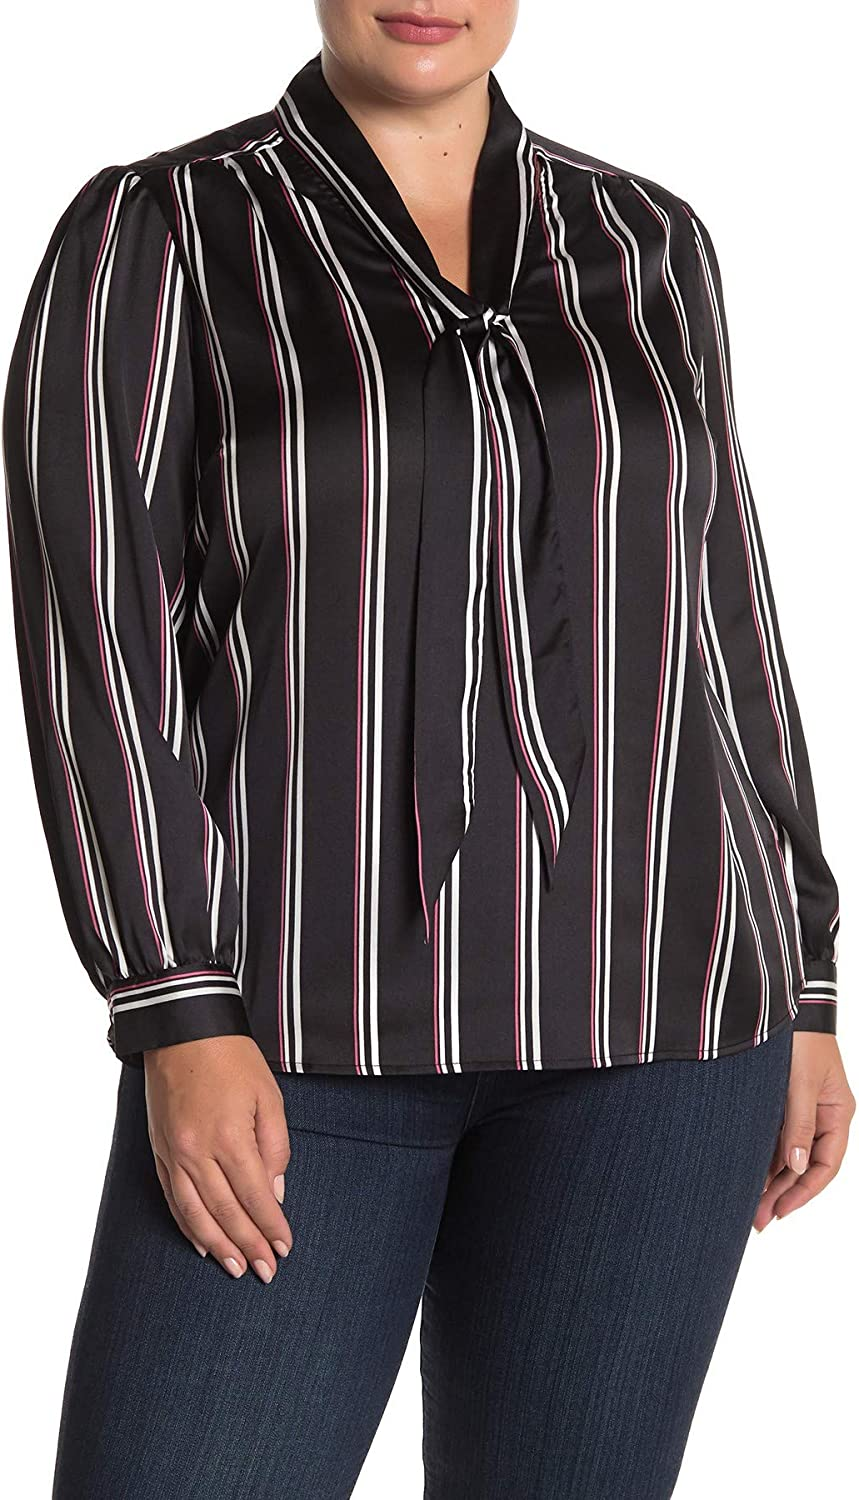 Laundry by Shelli Segal Stripe Print Tie Front Blouse Plus Size 16W Malaga Black Pink White